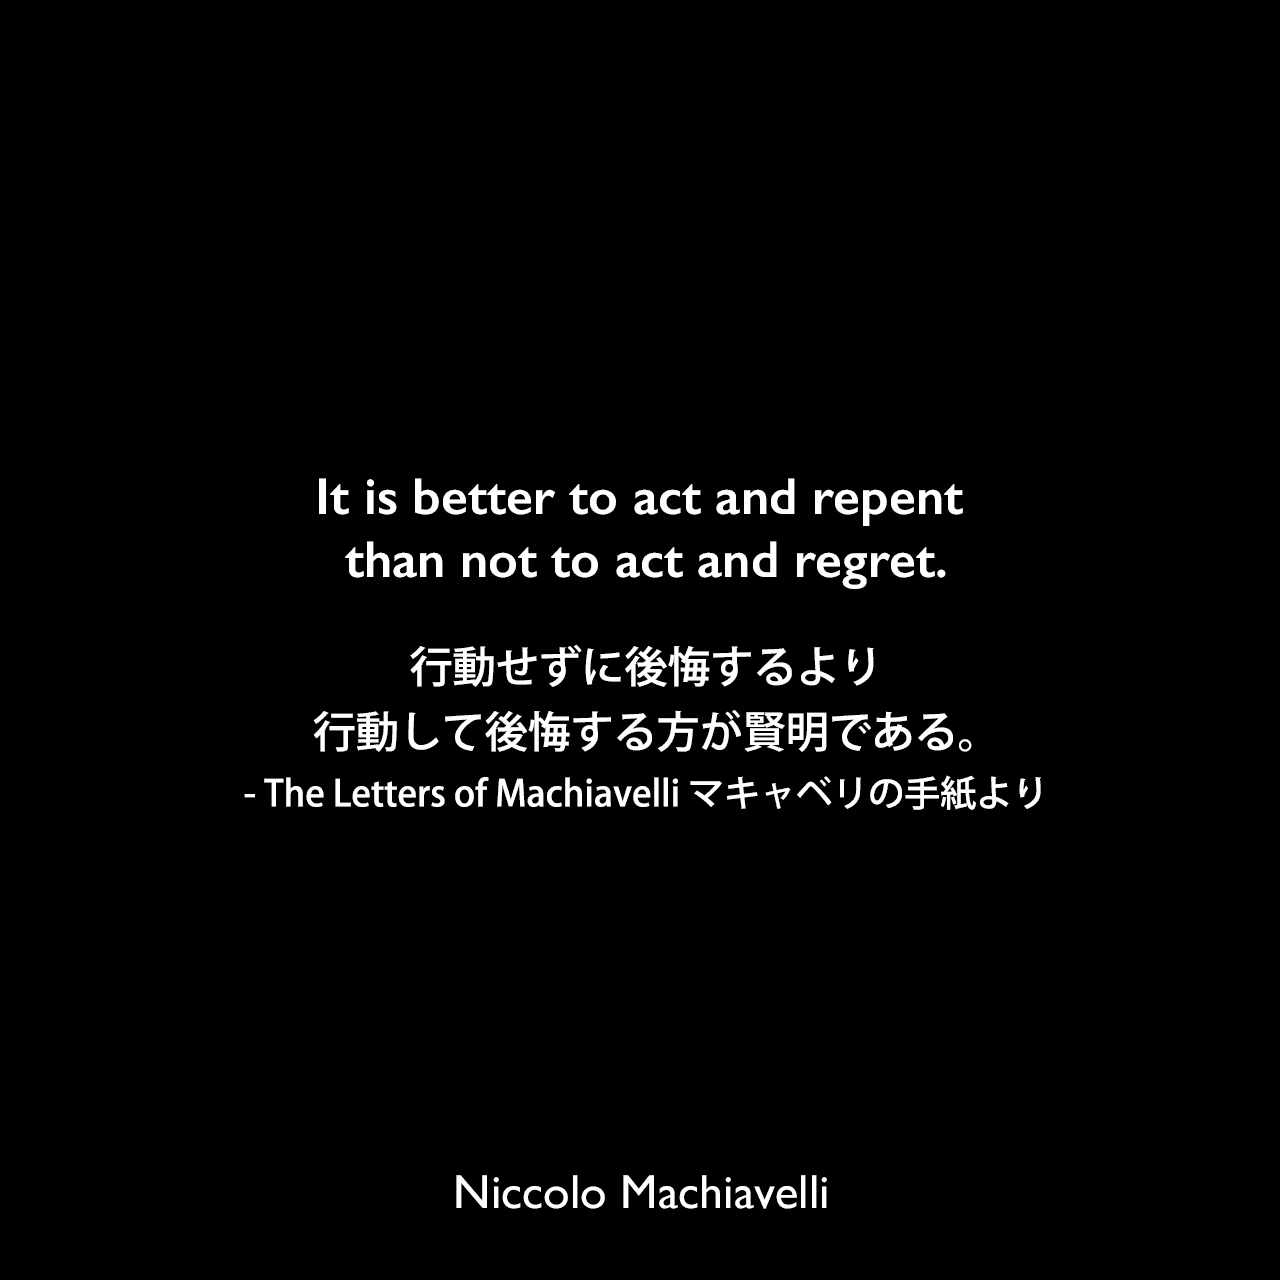 It is better to act and repent than not to act and regret.行動せずに後悔するより、行動して後悔する方が賢明である。- The Letters of Machiavelli マキャベリの手紙よりNiccolo Machiavelli